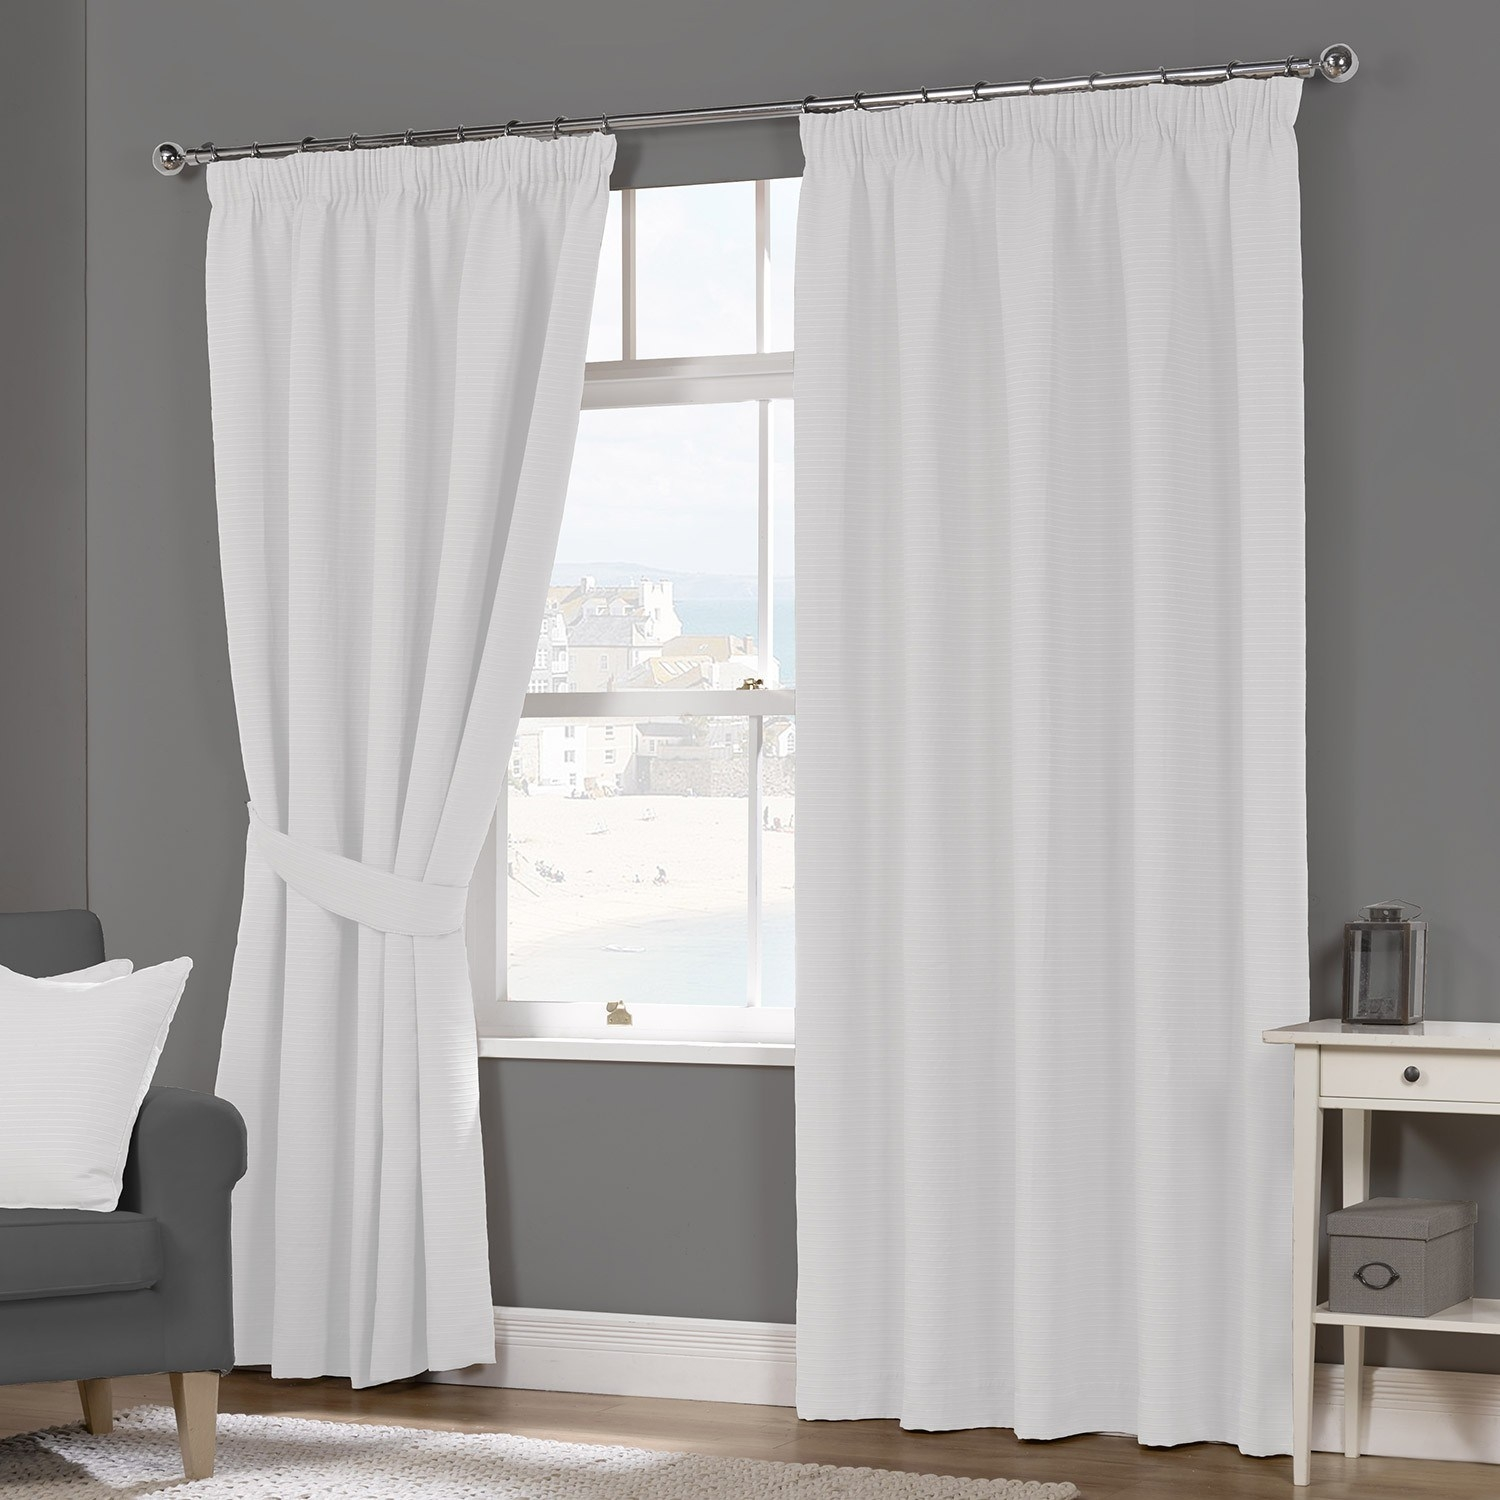 White Luxury Curtains Inside Luxury White Curtains (Image 14 of 15)